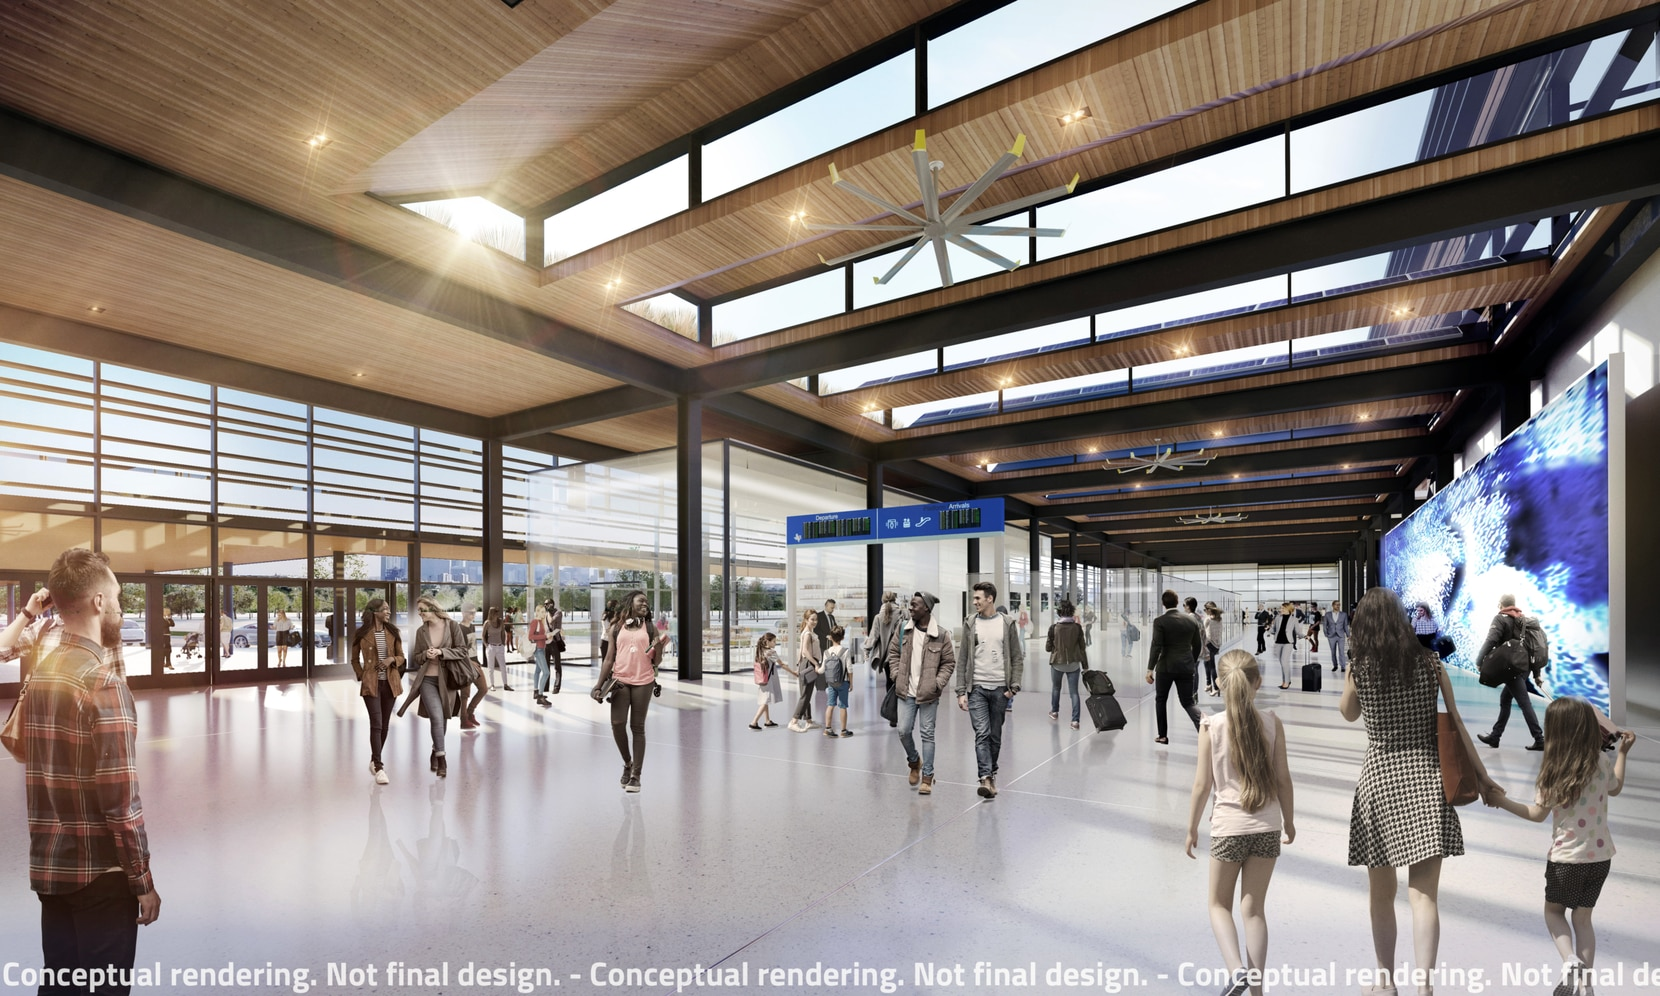 This is a rendering of what the inside of one of the Texas high-speed rail stations could look like.